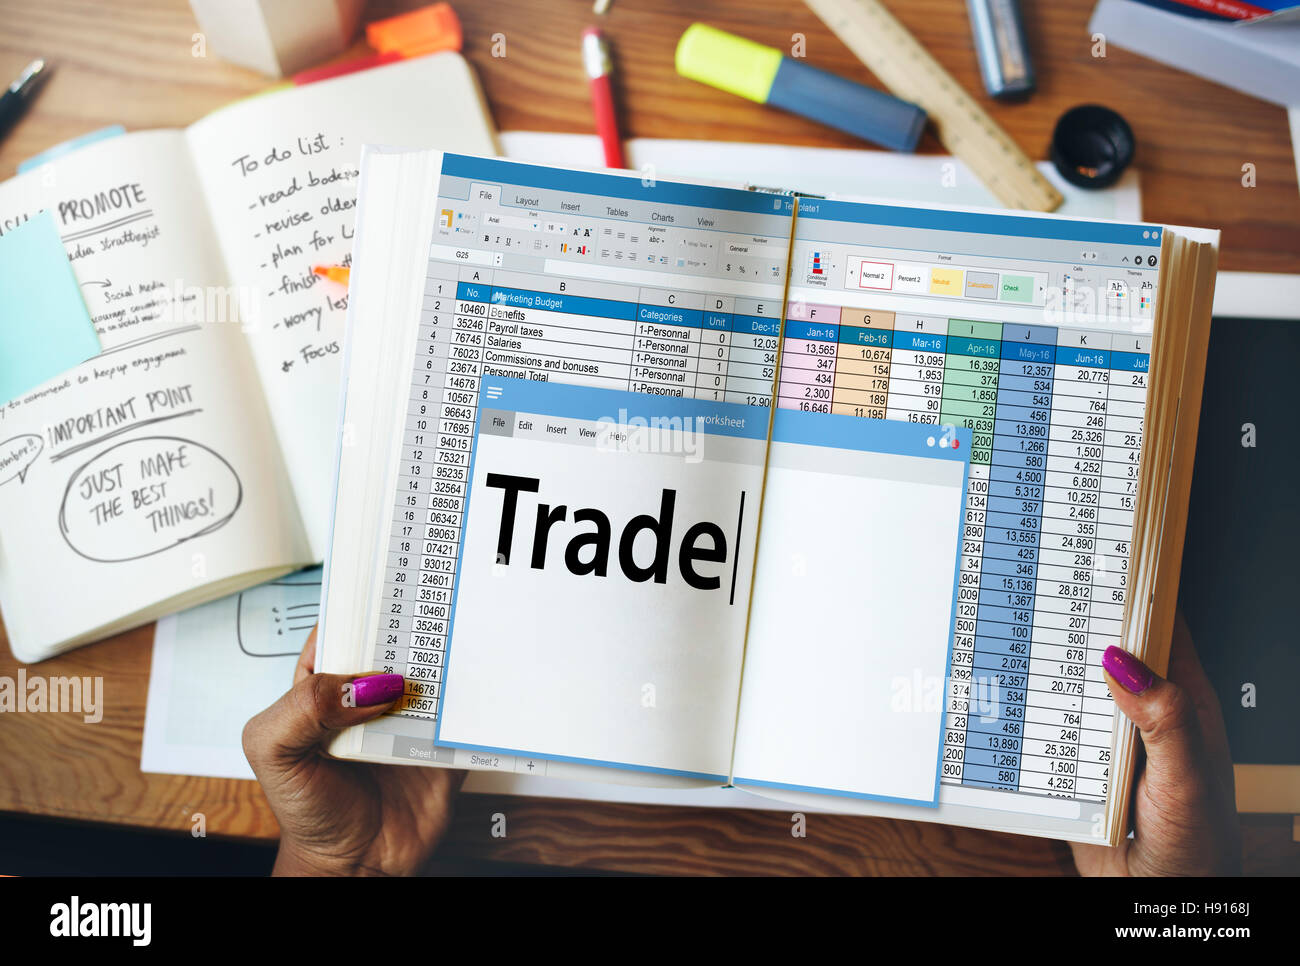 Trade Exchange Import Export Business Transaction Concept - Stock Image